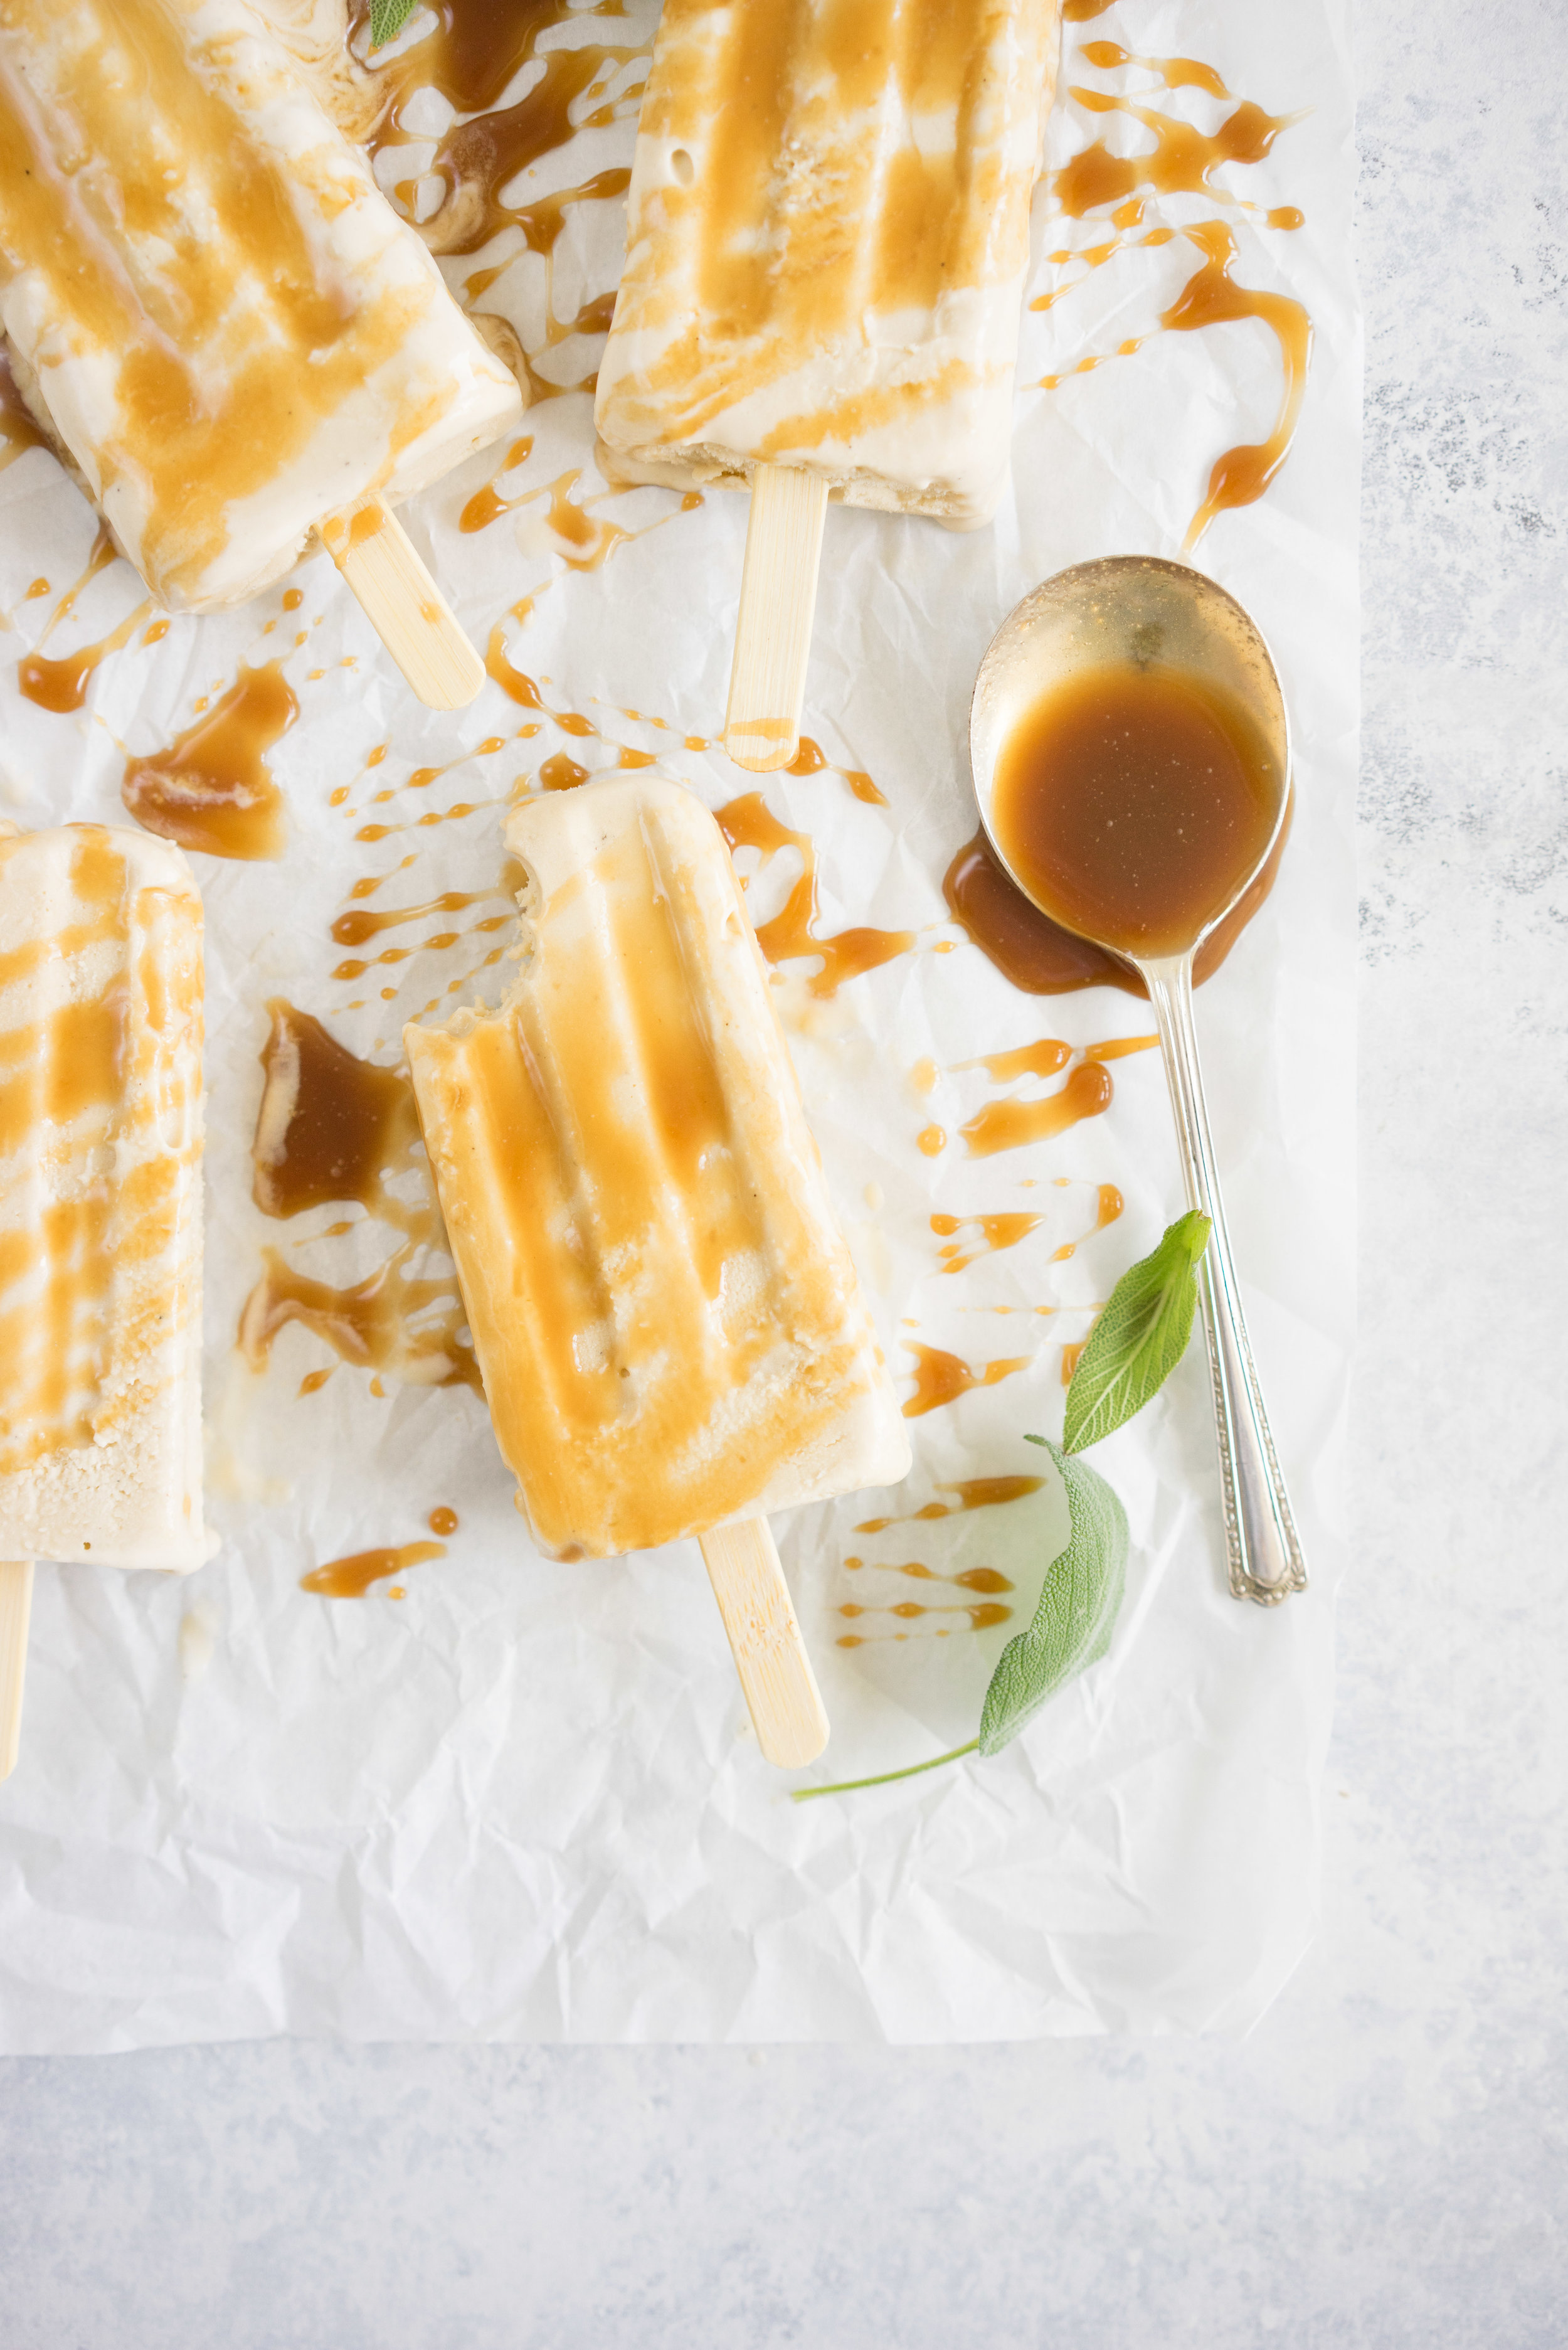 Sage salted caramel Ice-cream pops from Lily Diamond's new book, Kale and Caramel